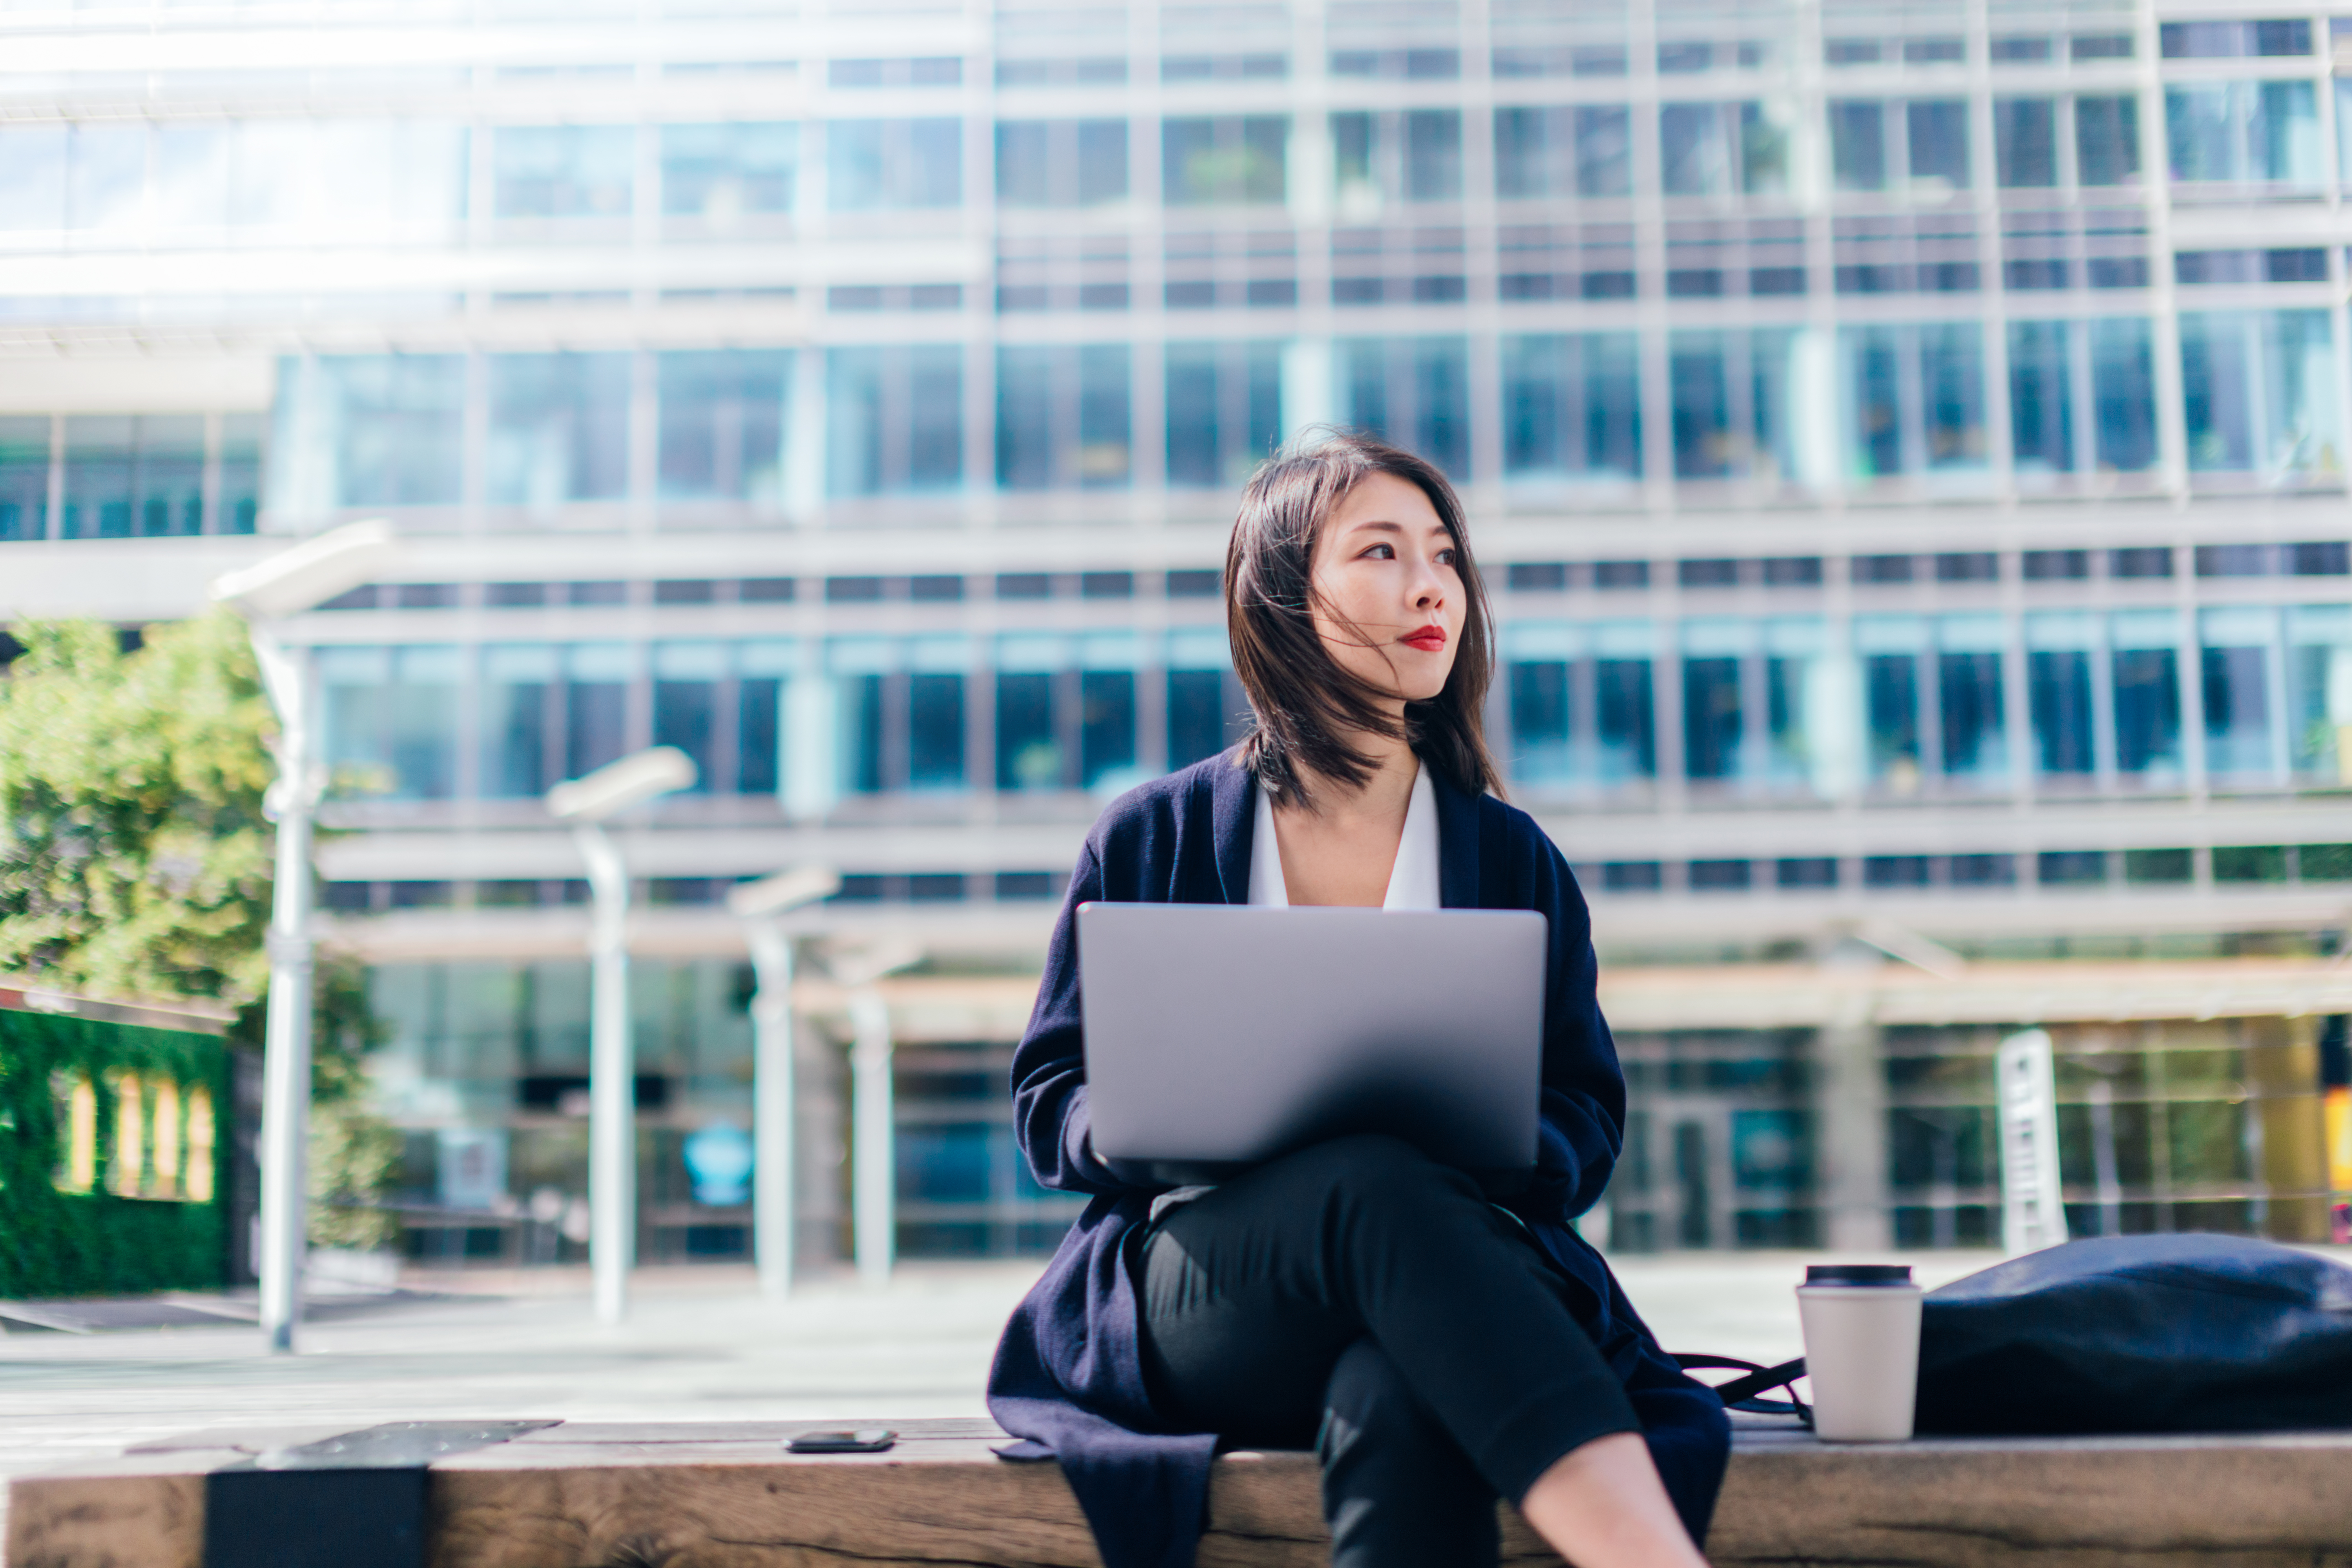 Confident Businesswoman Working With Laptop In The Financial District